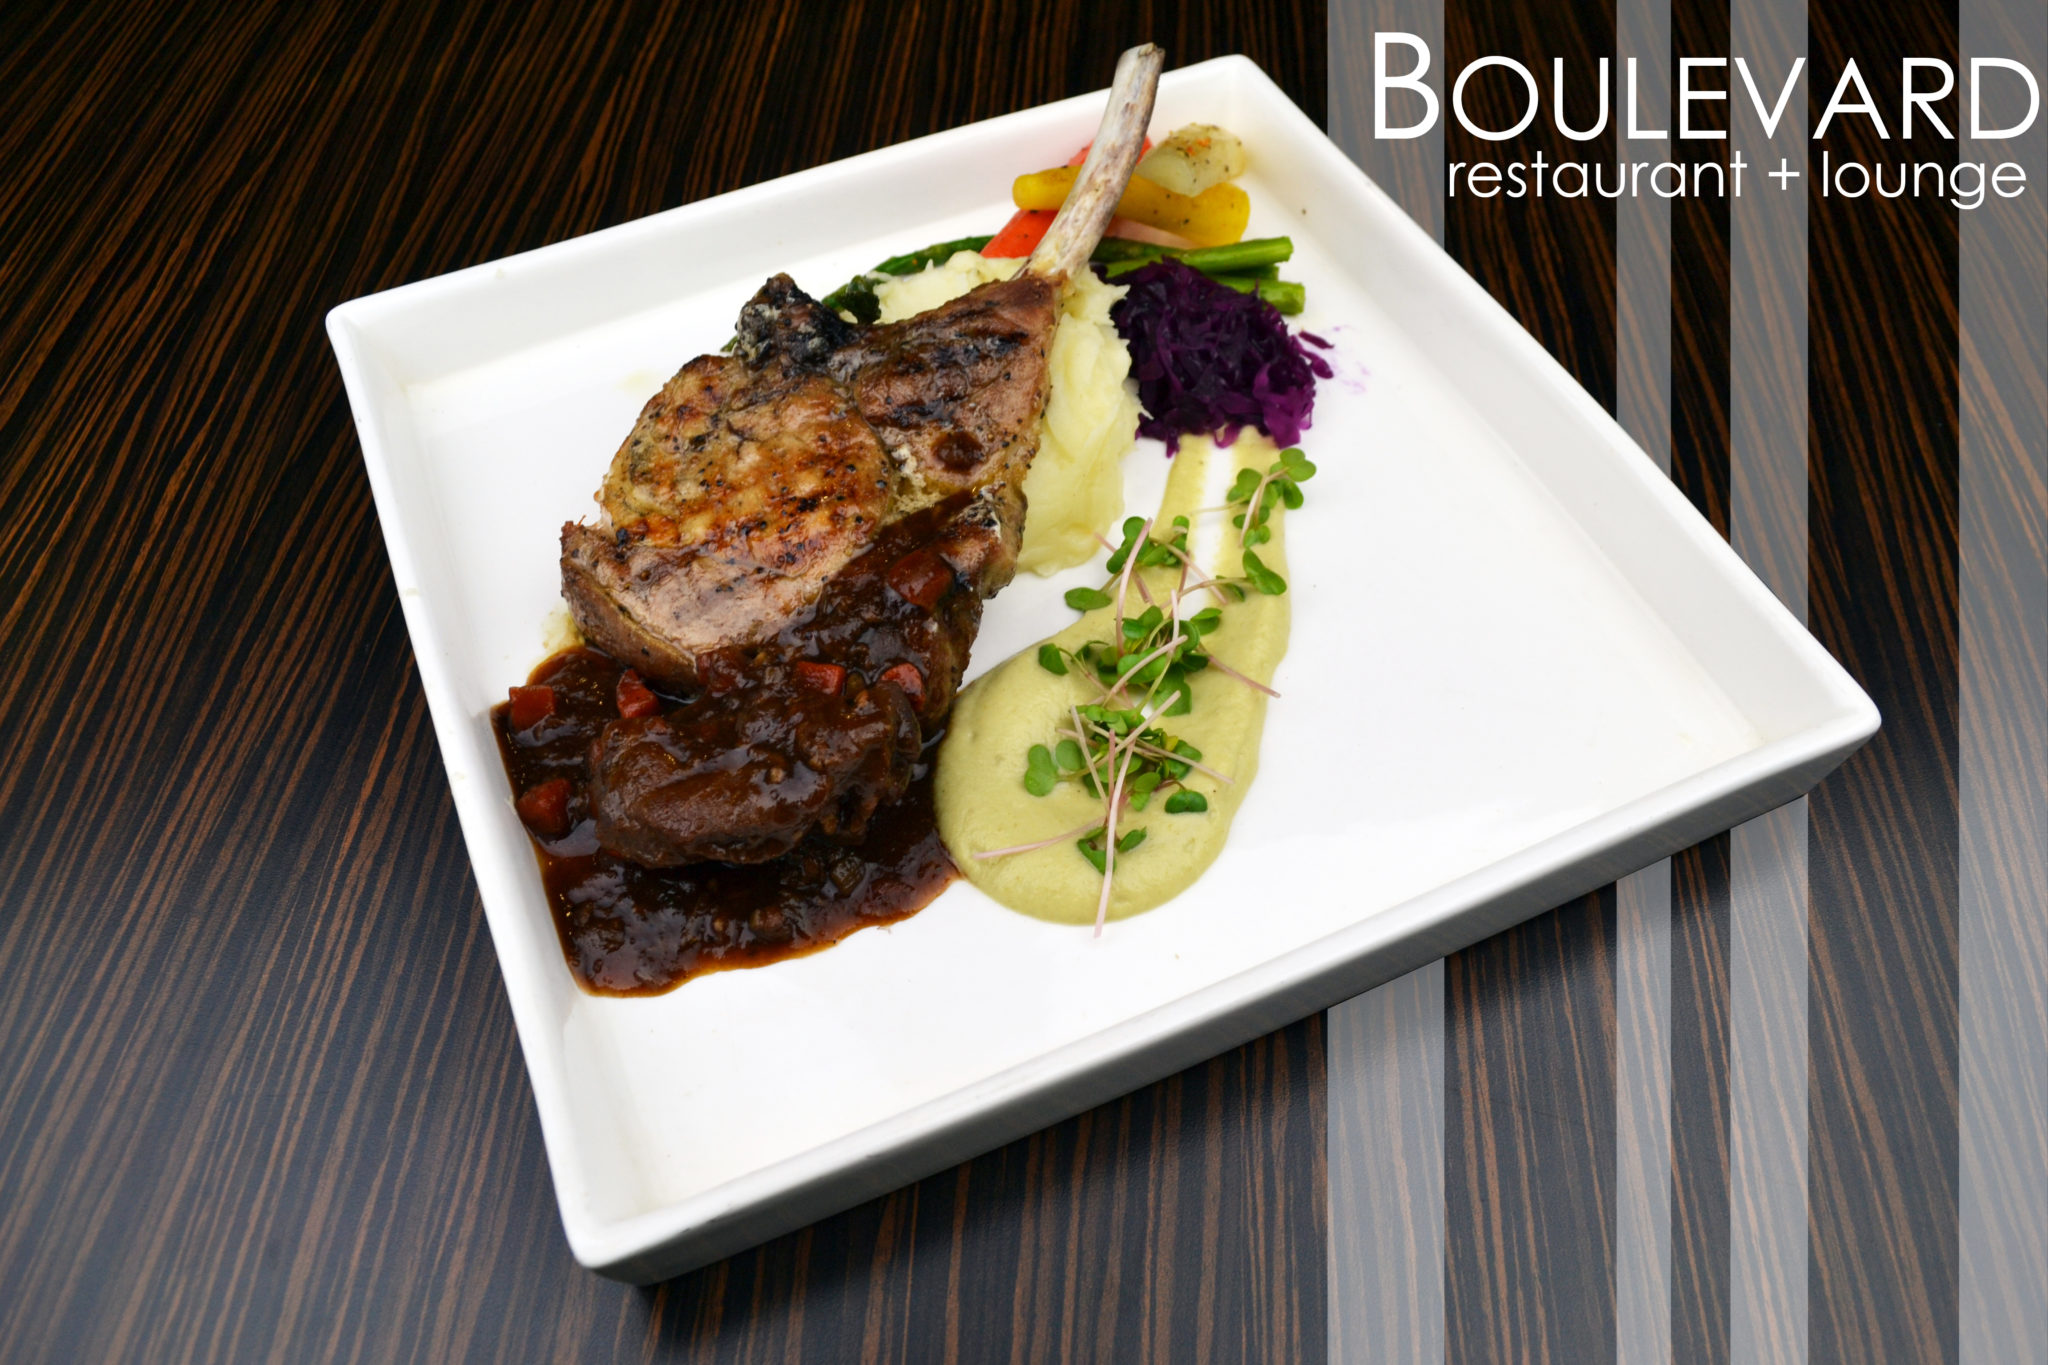 Boulevard Restaurant & Lounge in Red Deer, Alberta